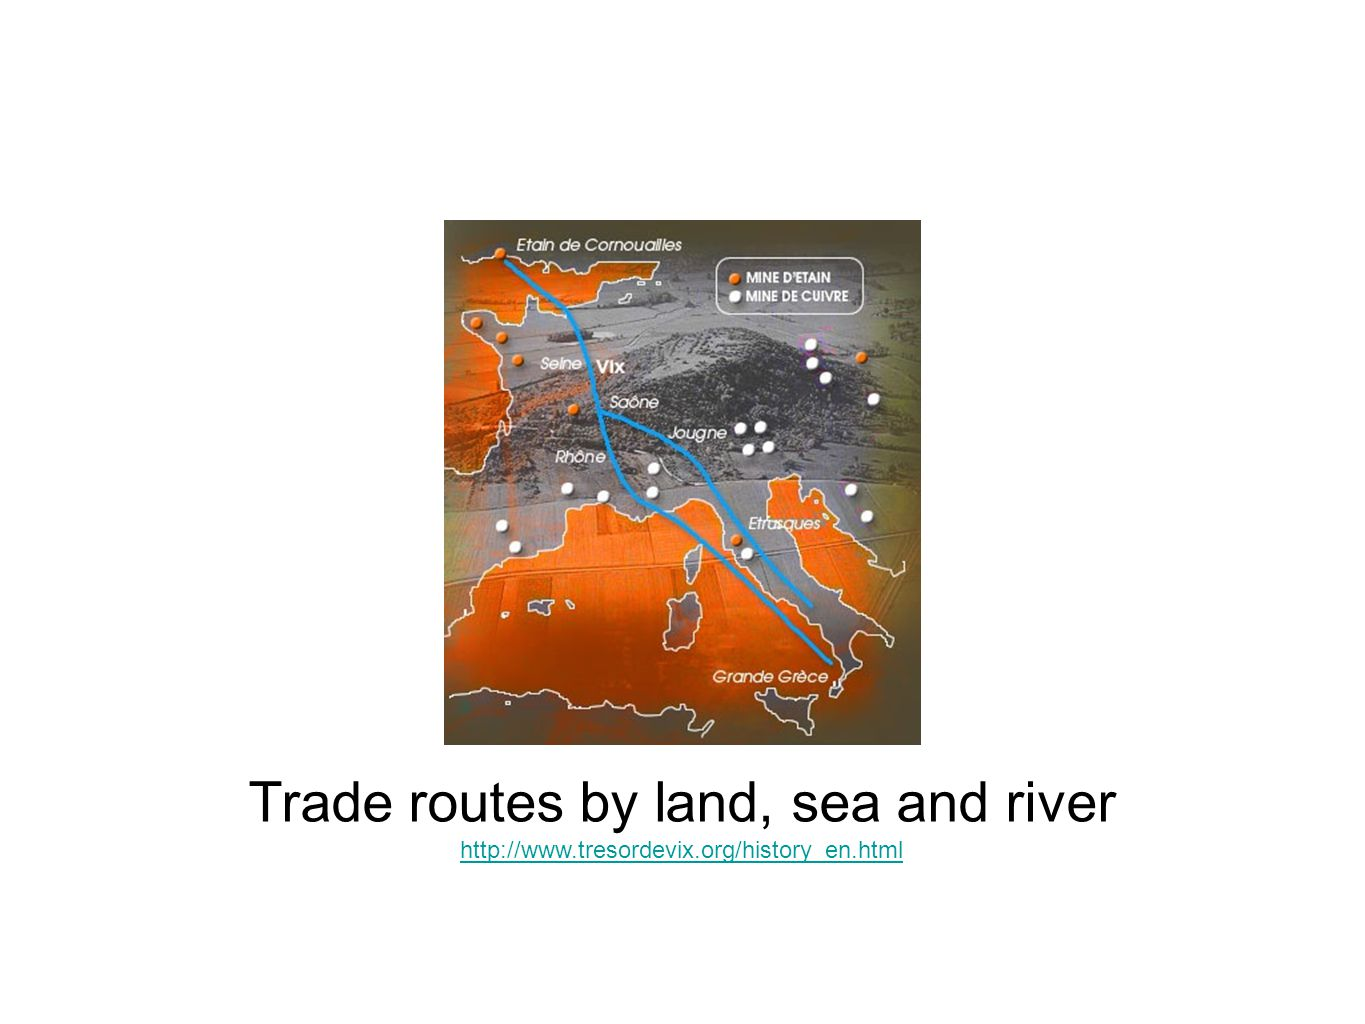 Trade routes by land, sea and river http://www.tresordevix.org/history_en.html